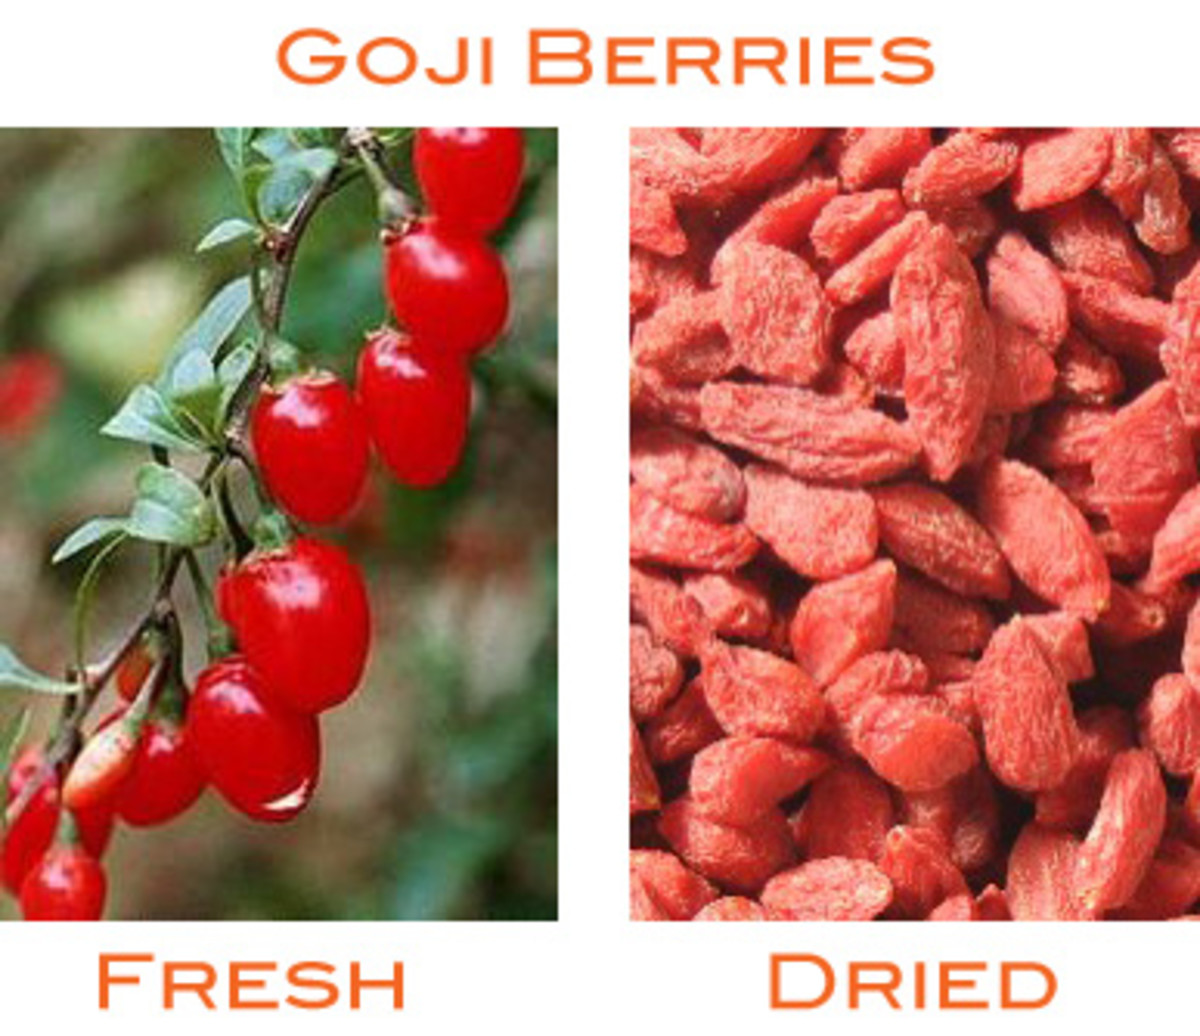 Goji Berries contain a LOT of iron.